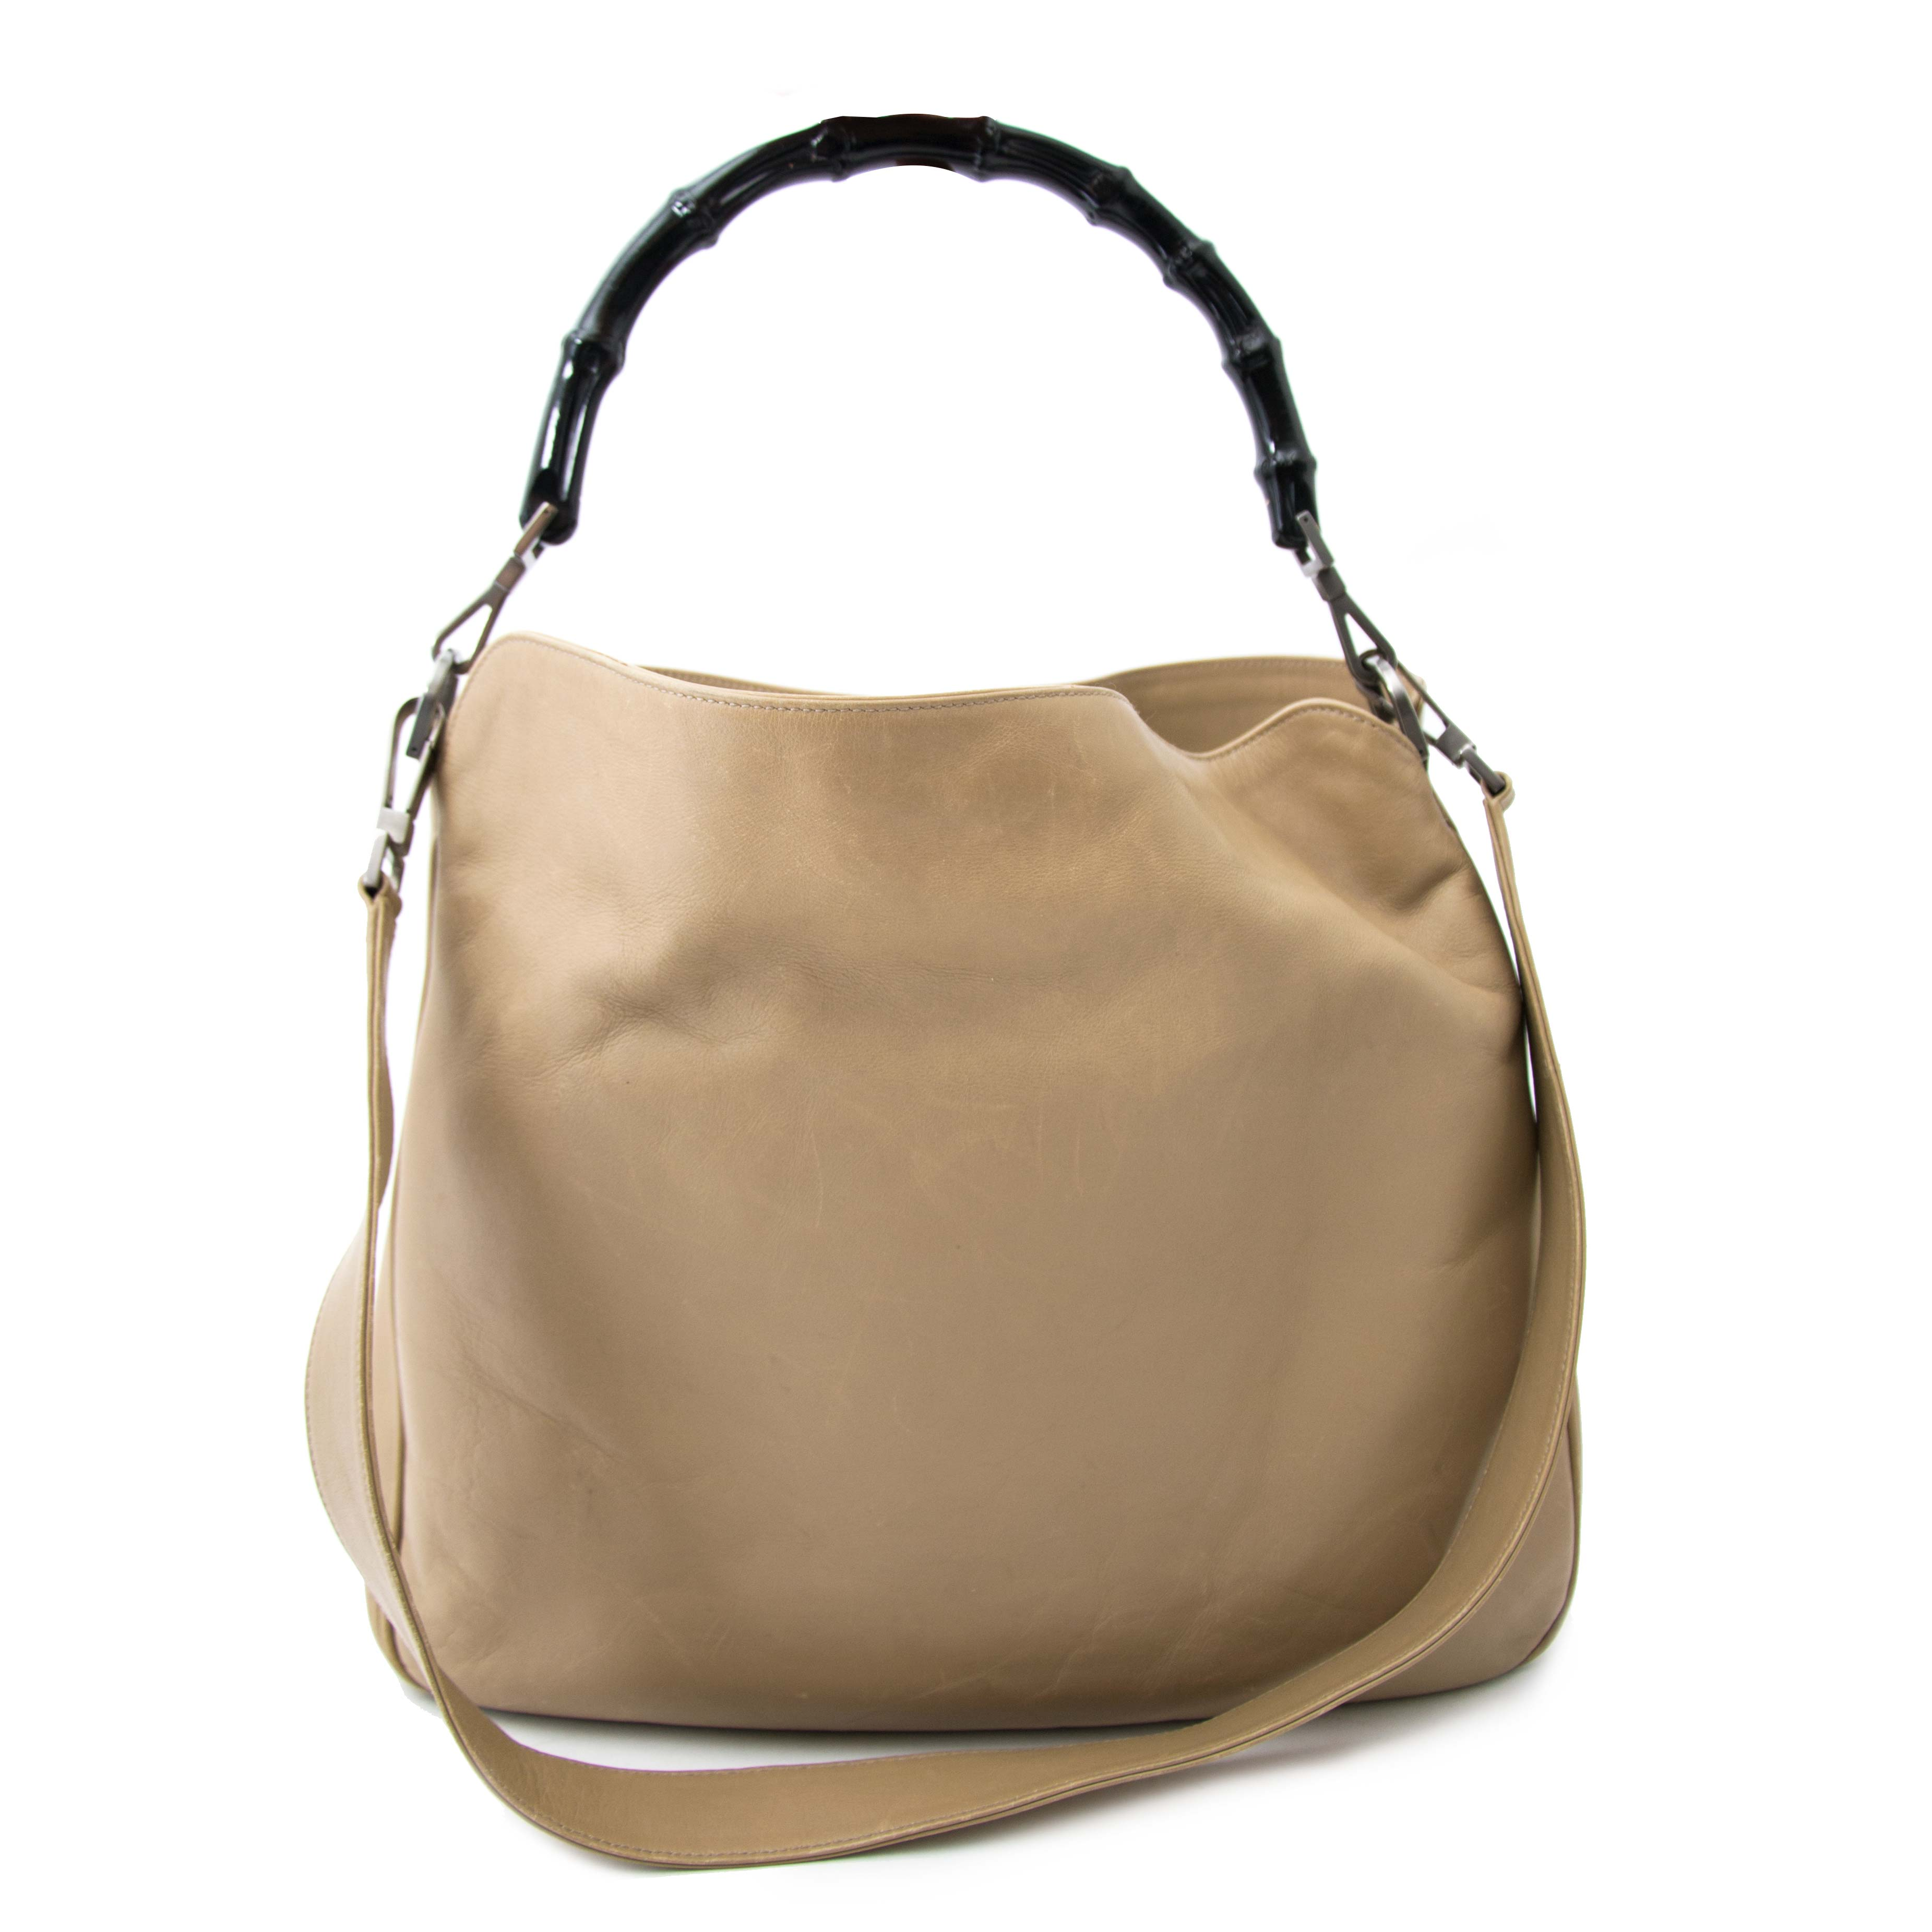 5e502447726 ... shop online at the best price Gucci Taupe Bamboo Shoulder Bag